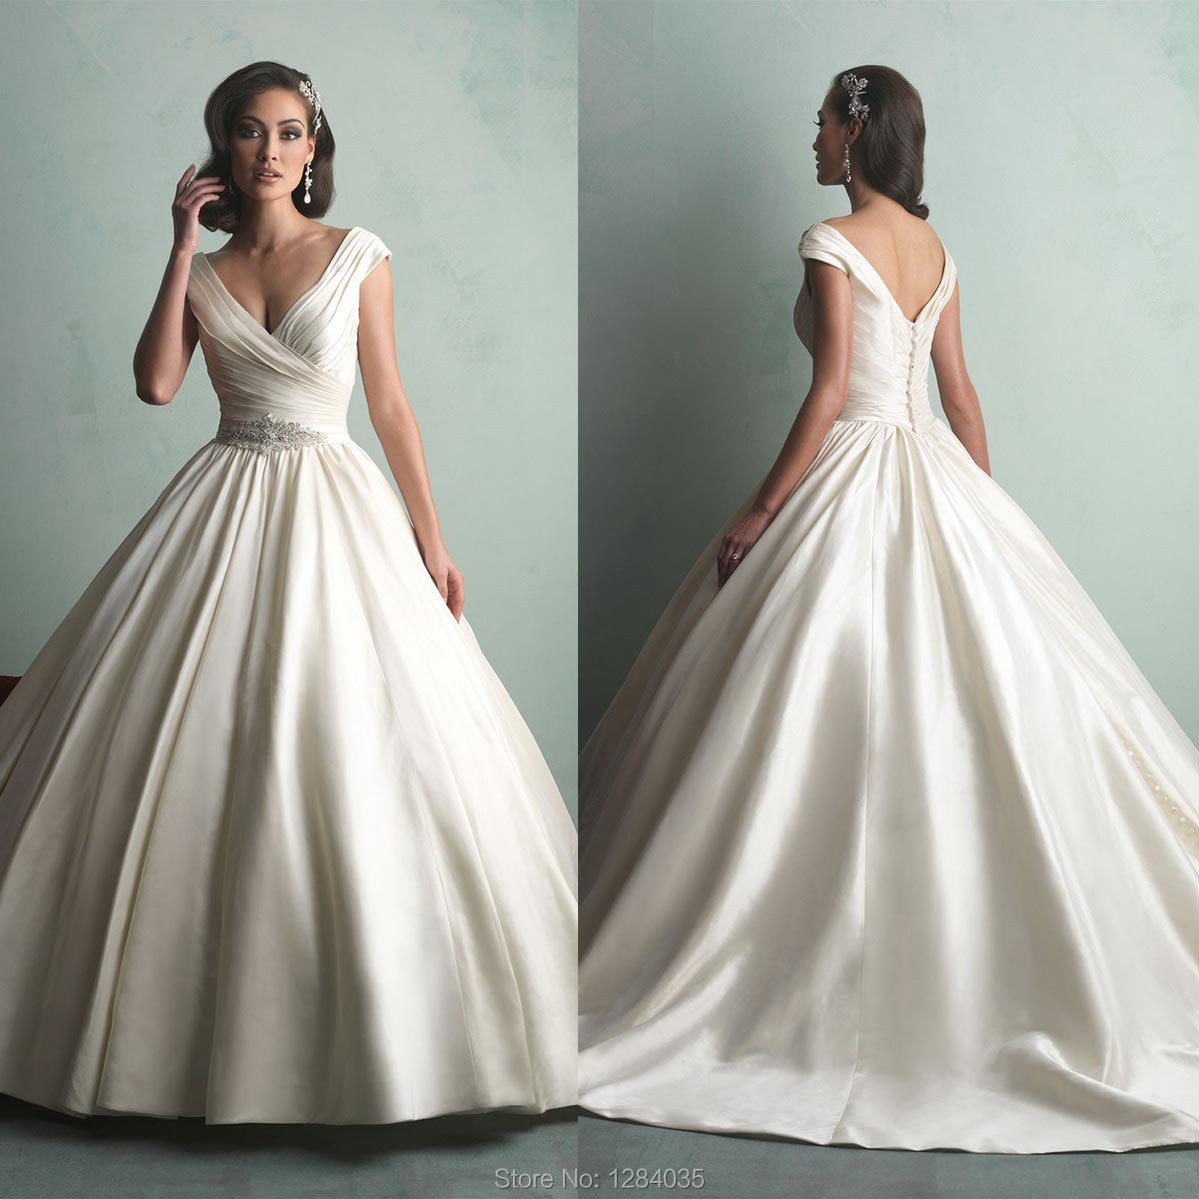 Sexy custom satin wedding dress 9155 cinderella ball gown for V neck satin wedding dress